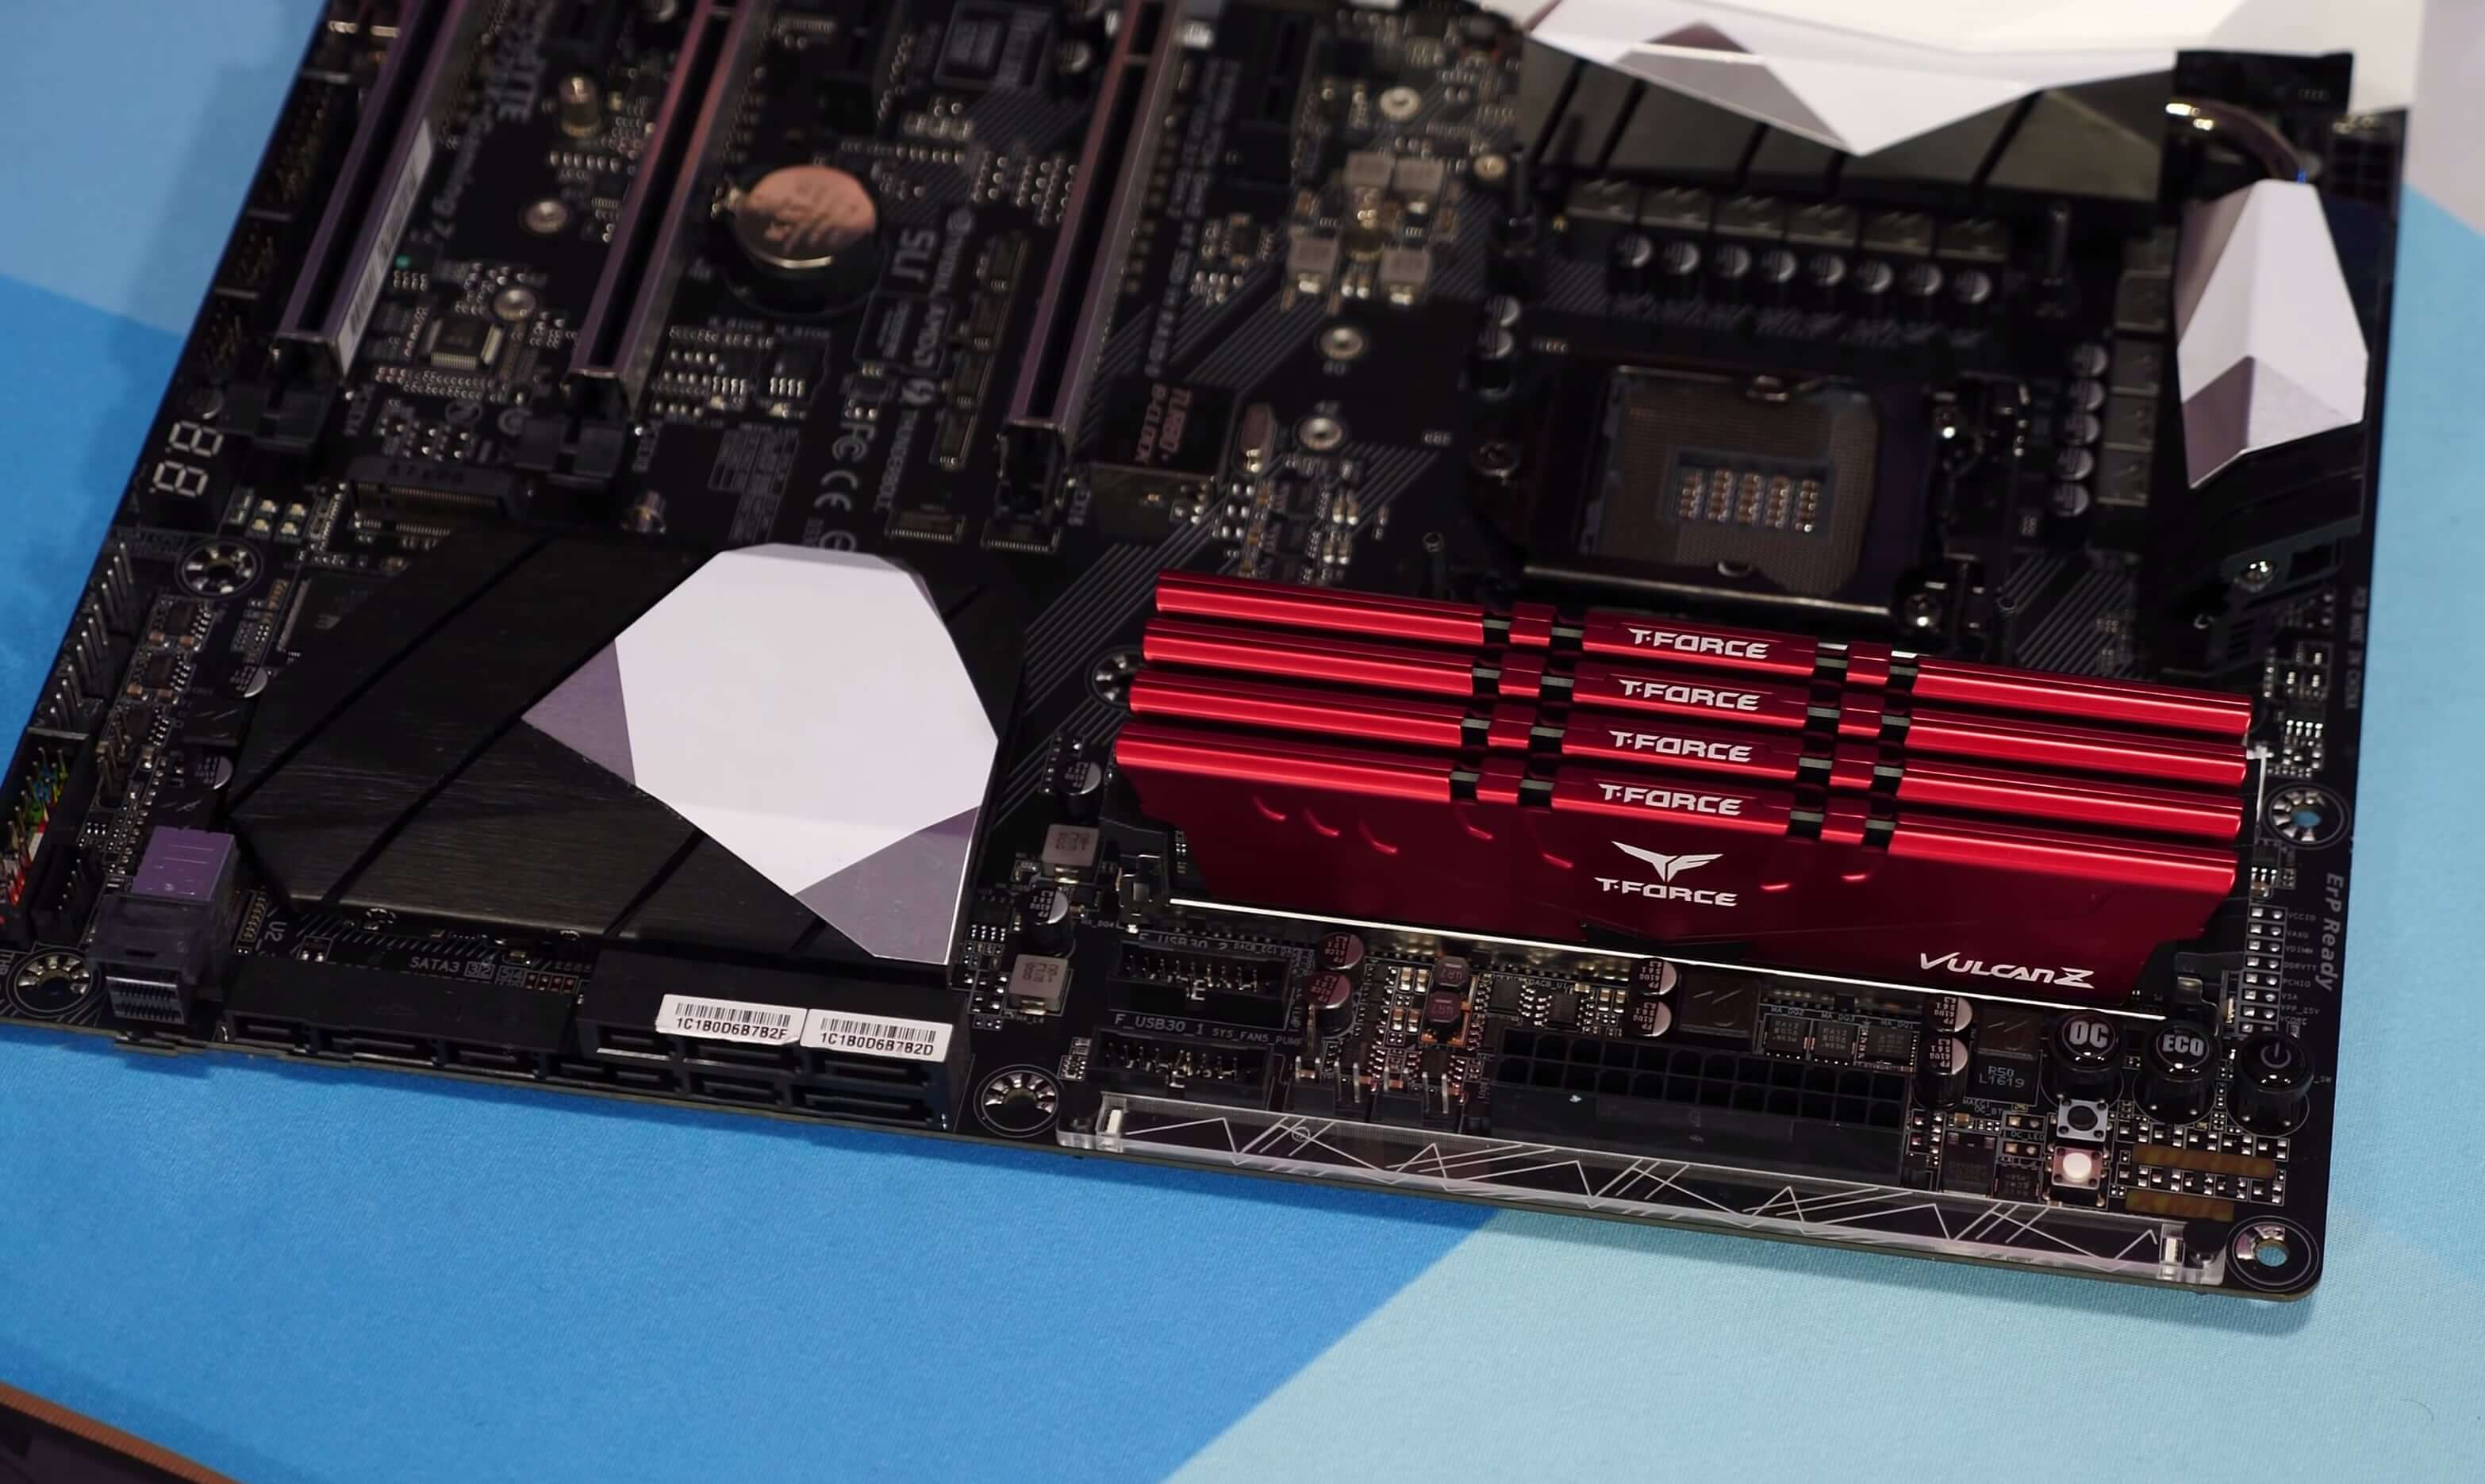 Are More RAM Modules Better for Gaming? 4 x 4GB vs. 2 x 8GB